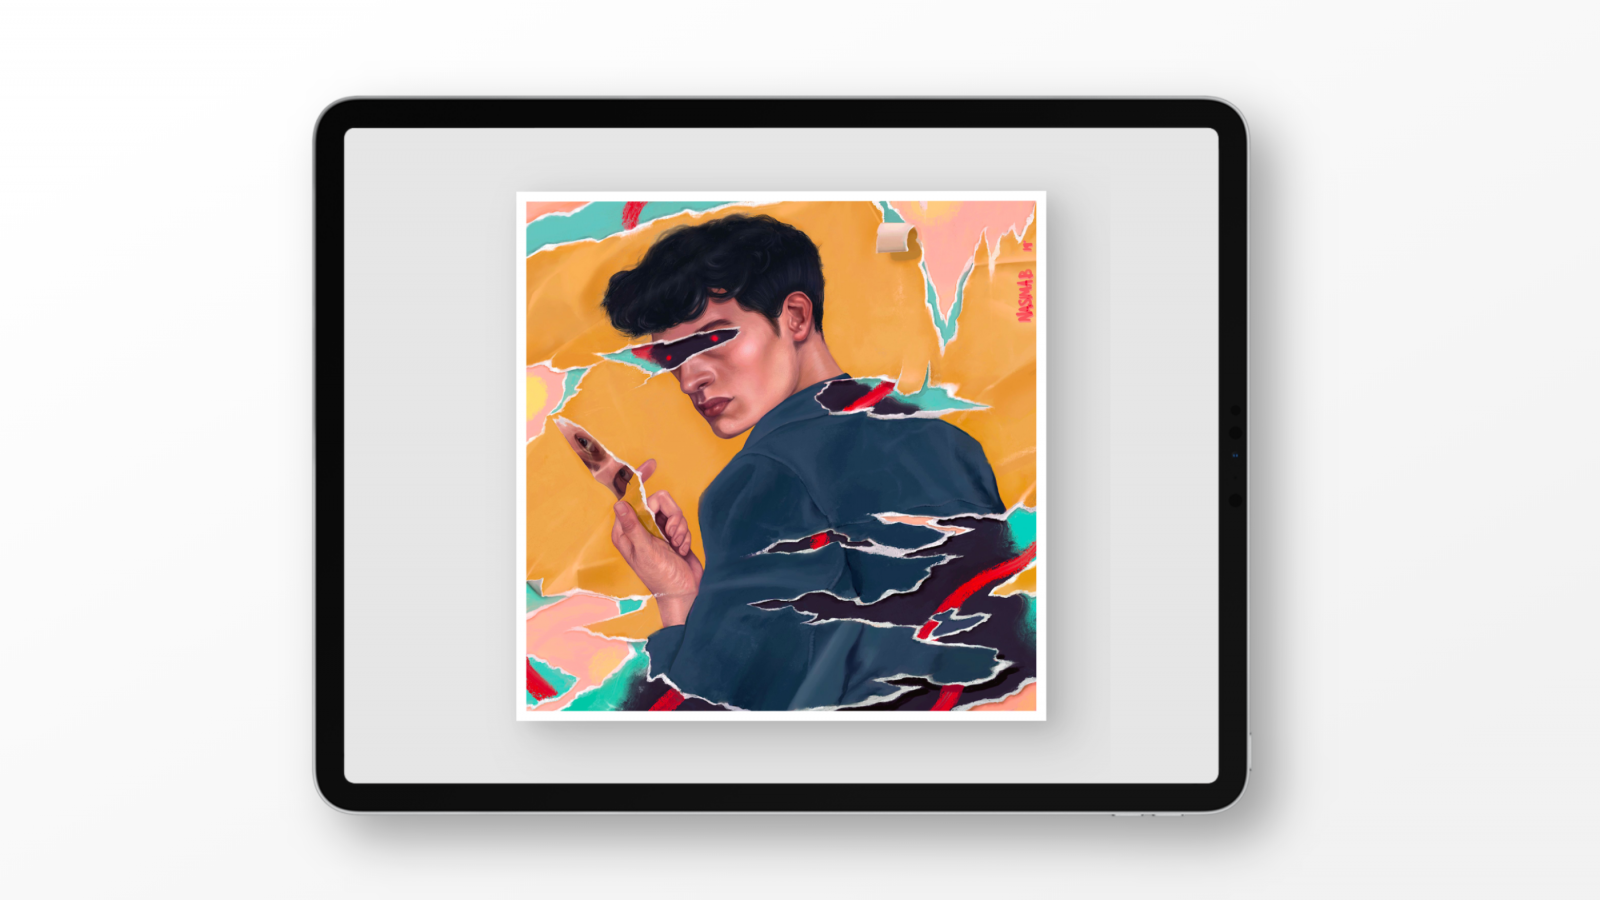 Procreate announced its 2019 Art Prize Winners